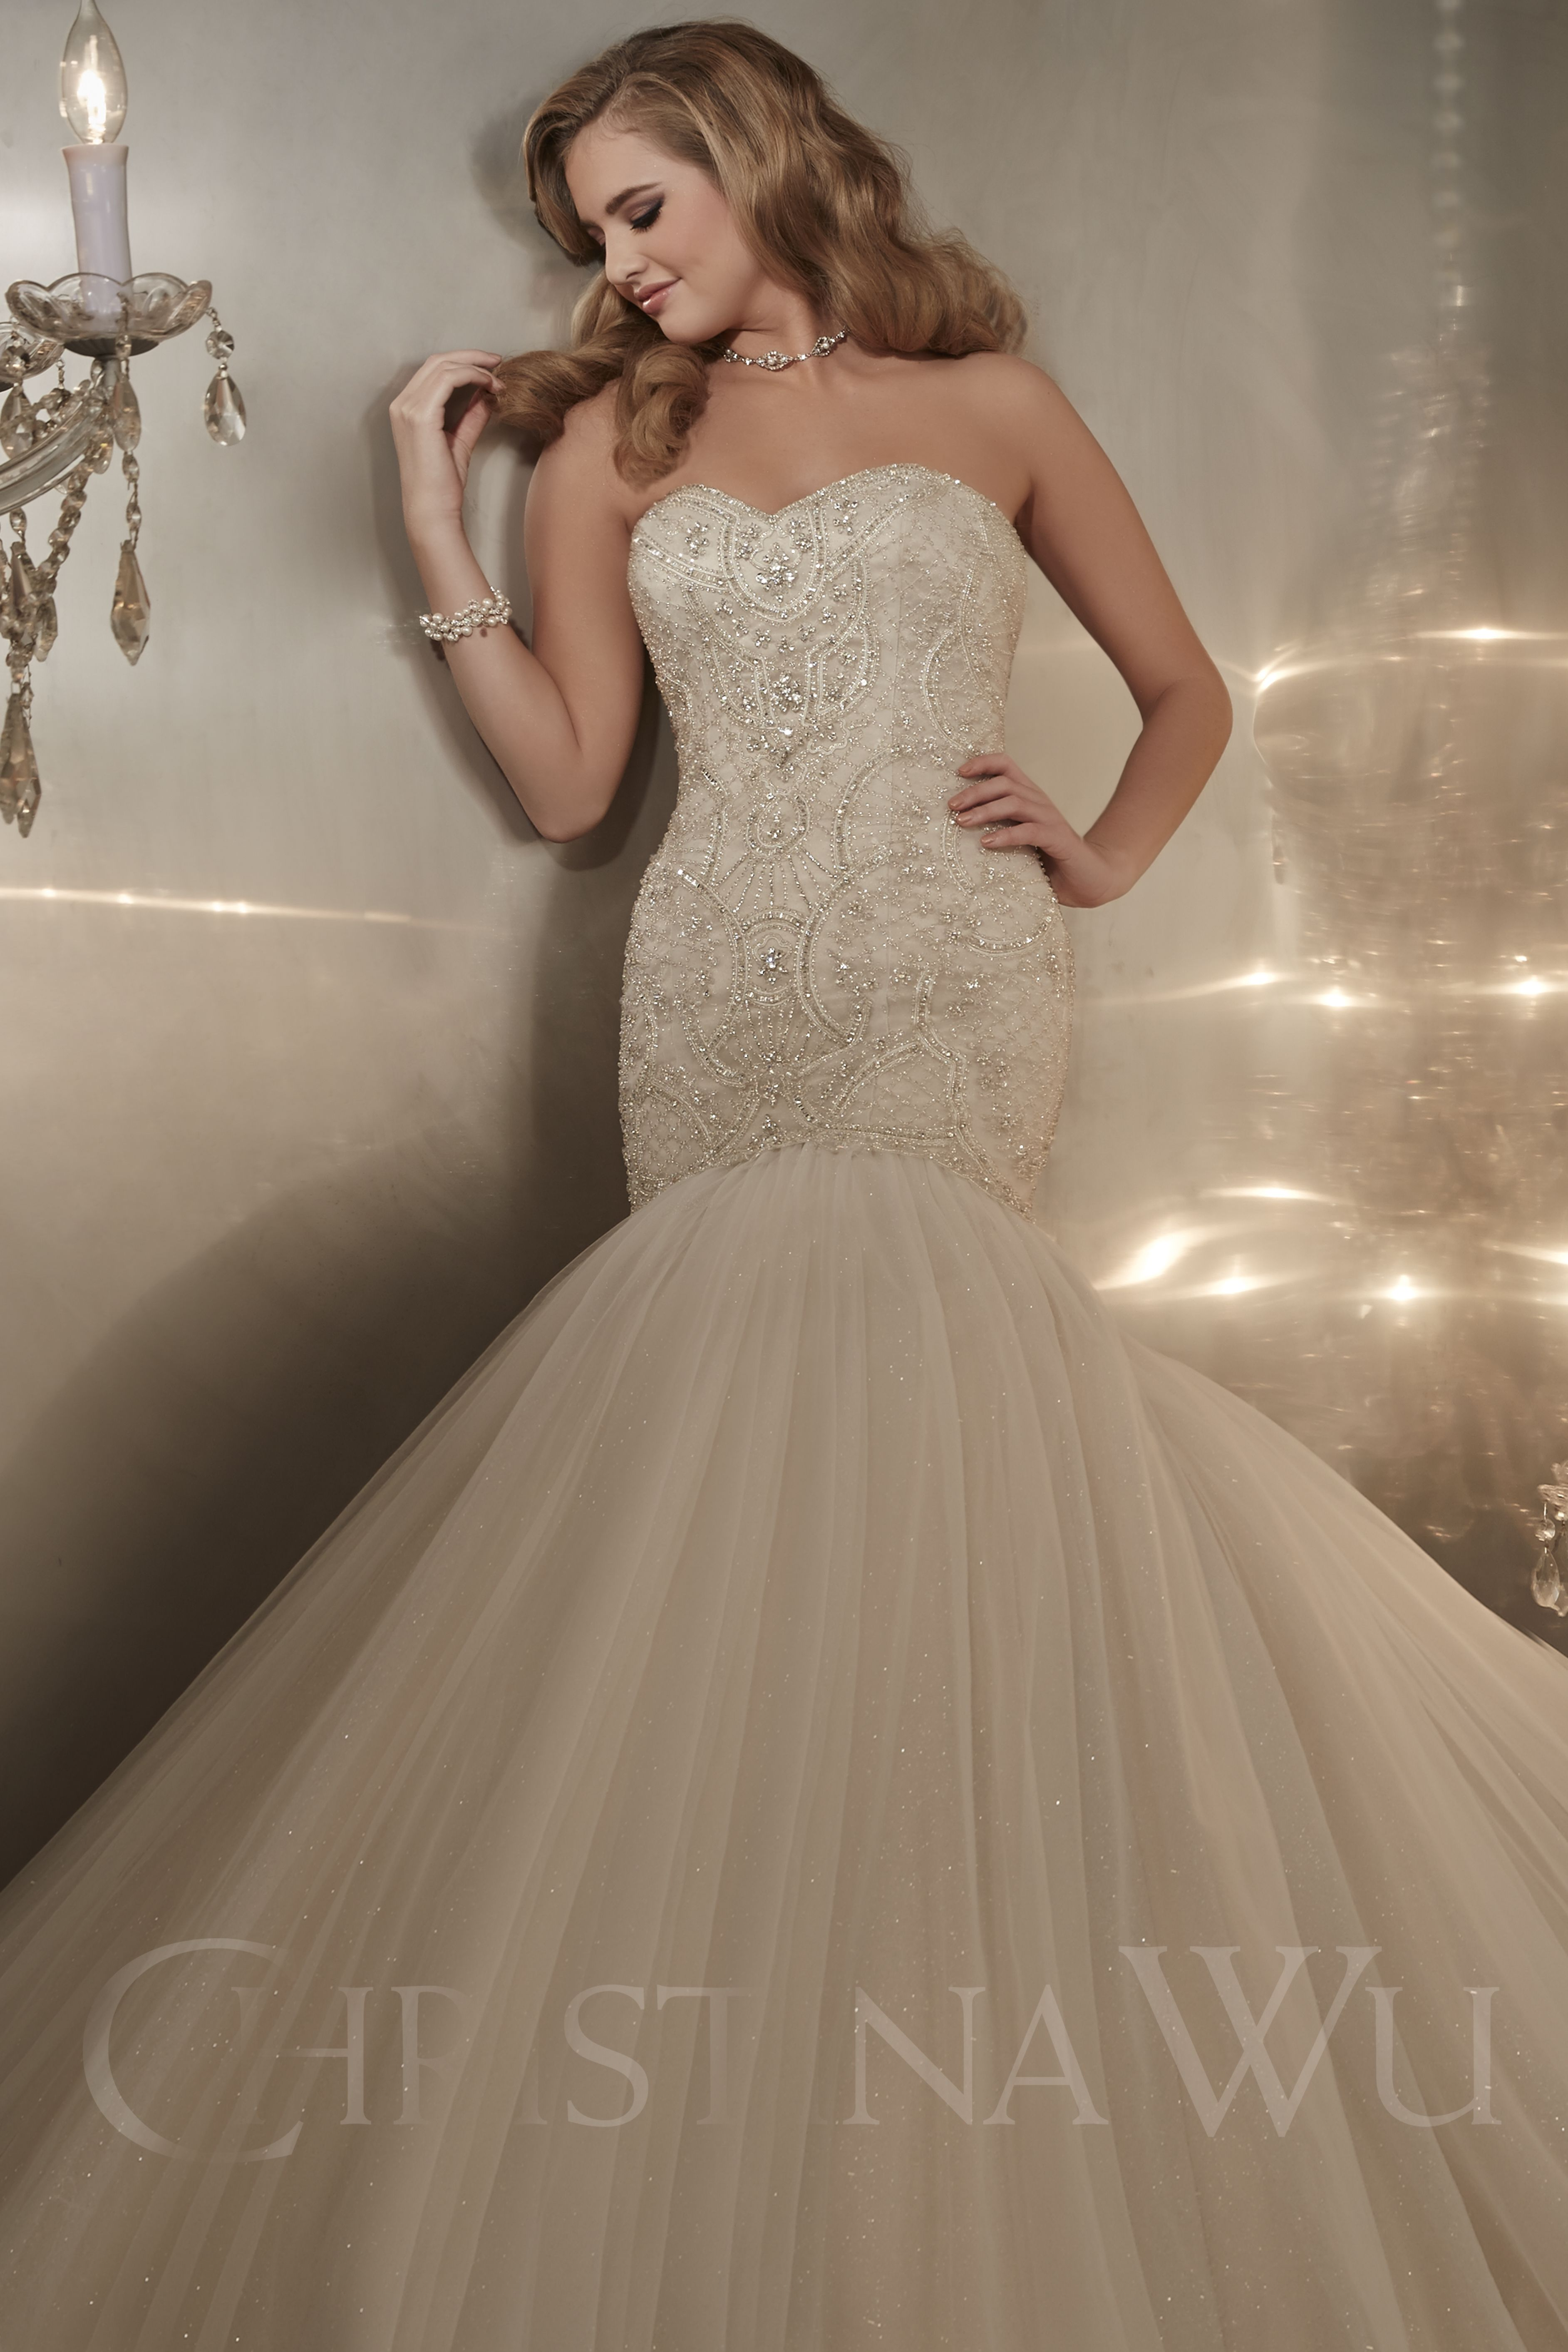 Christina wu style diamond tulle over satin with intricate